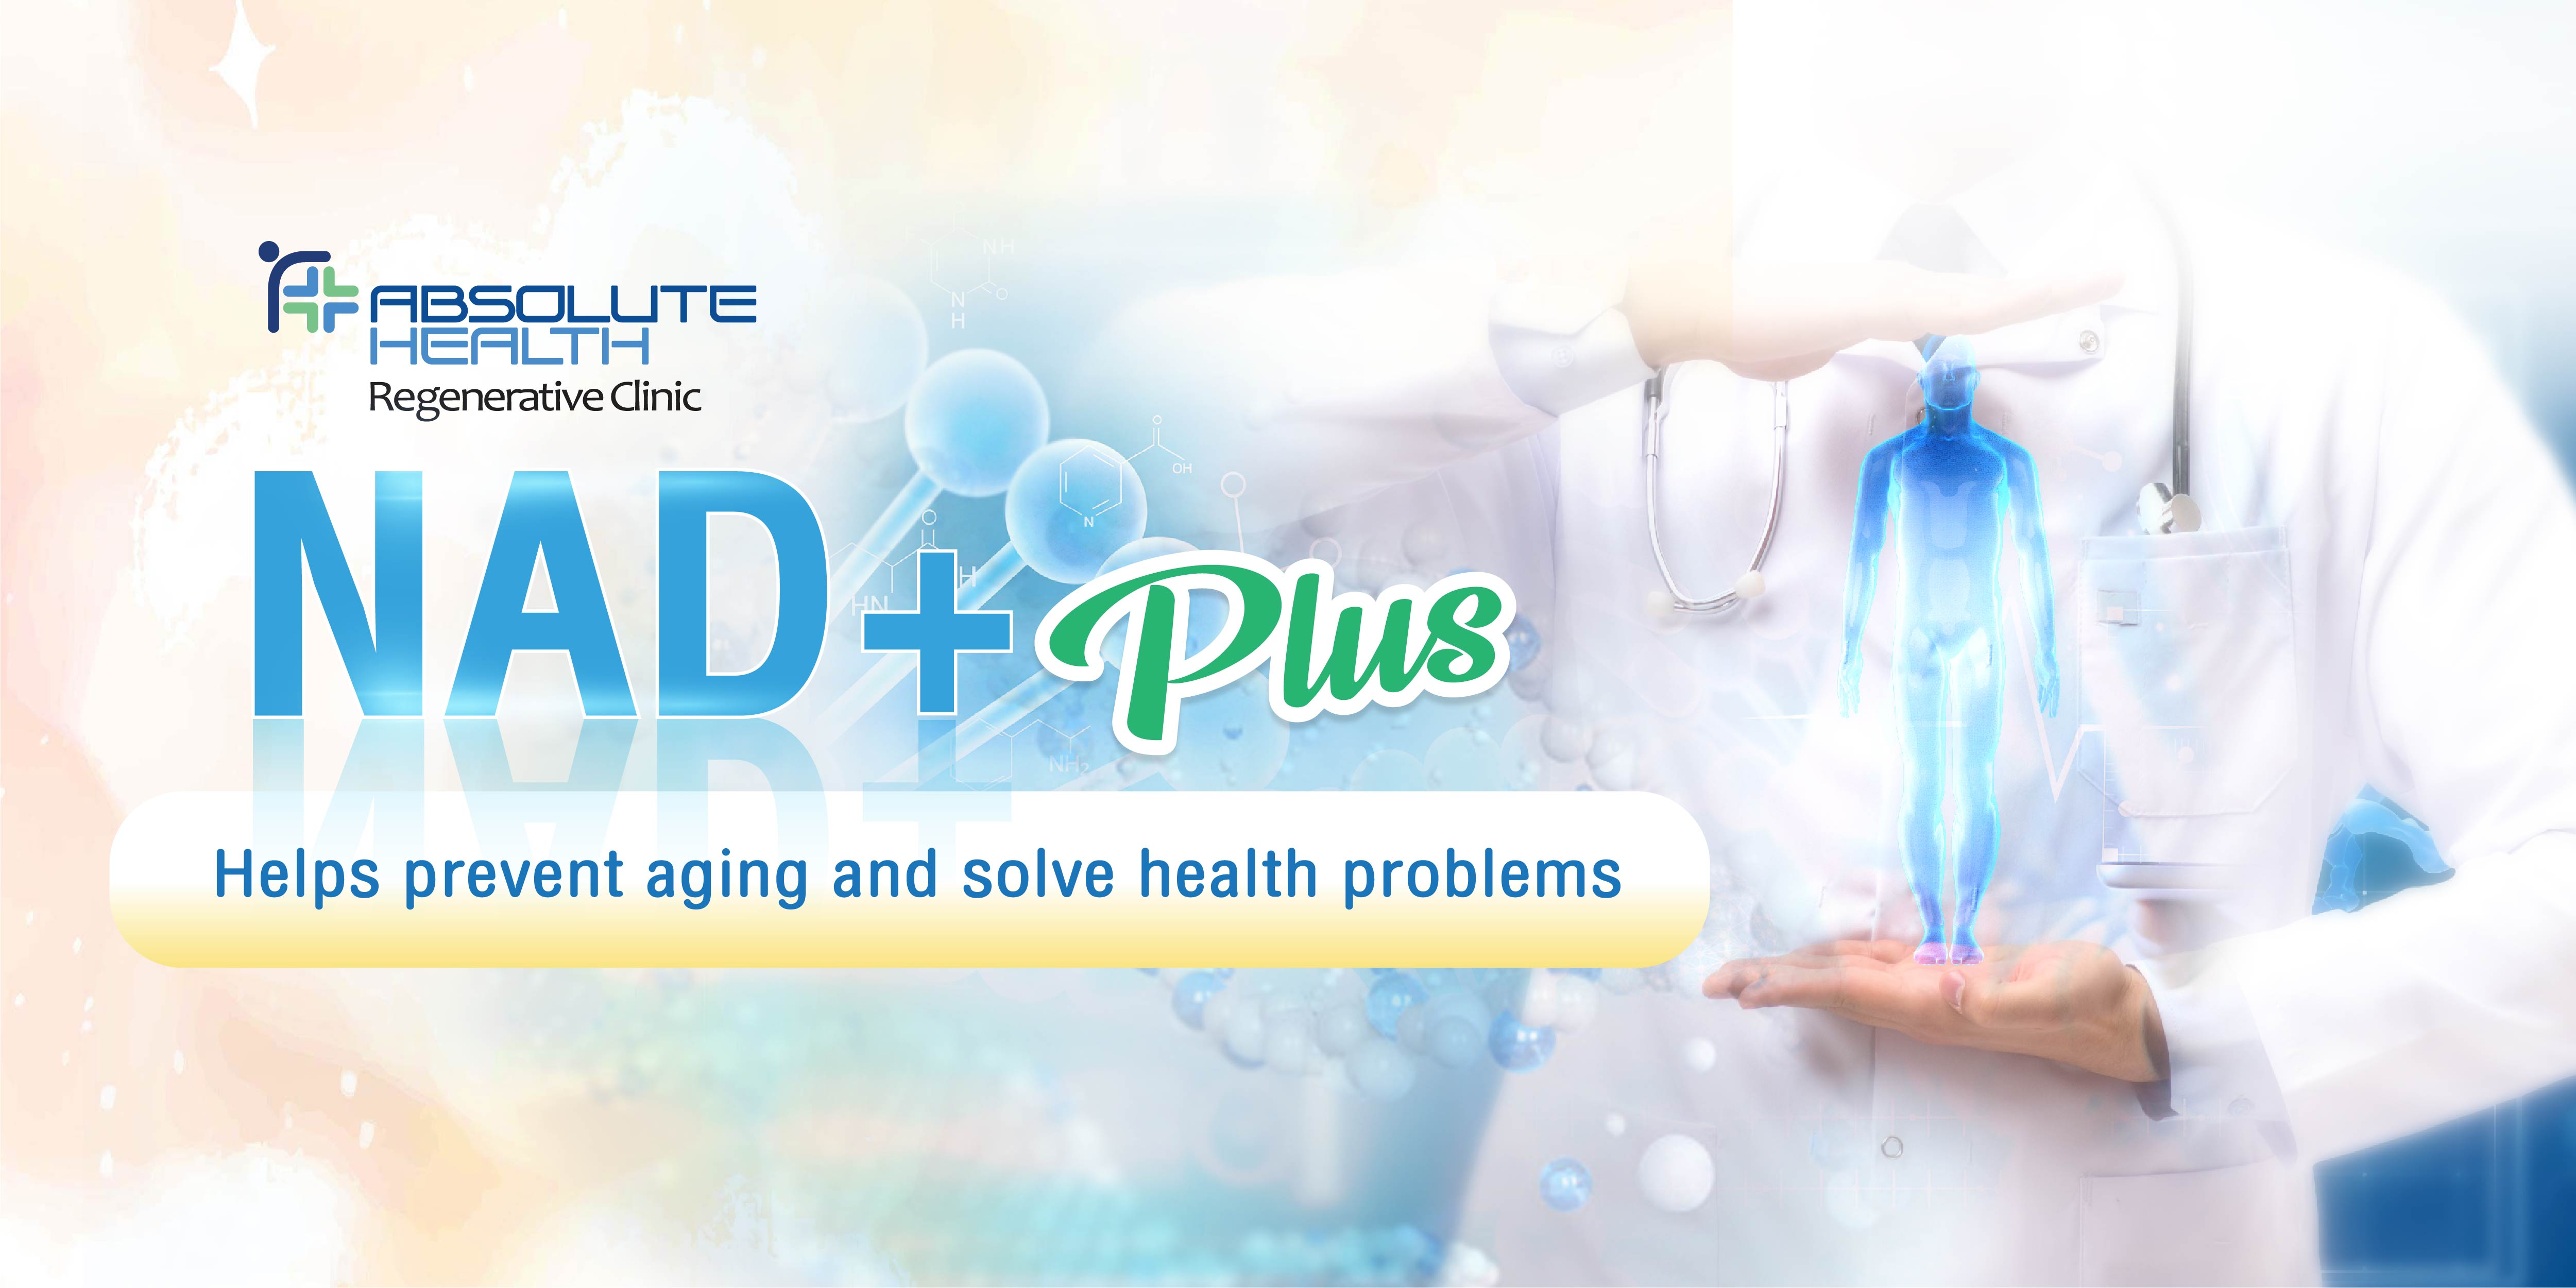 NAD+ Helps prevent aging and solve health problems